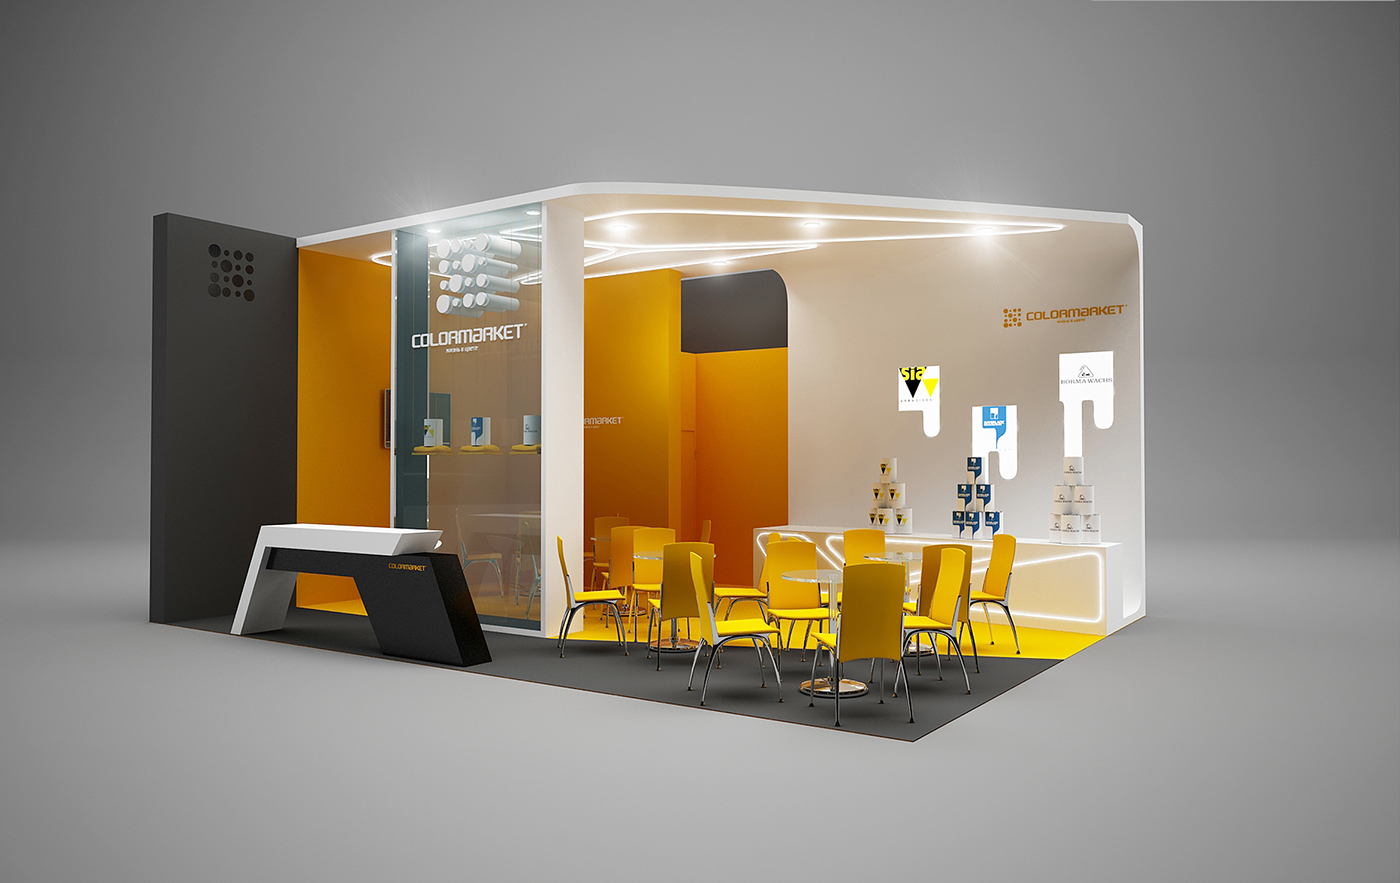 Exhibition Stand Behance : Pin by shih kevin on g 展場 exhibition stand design stand